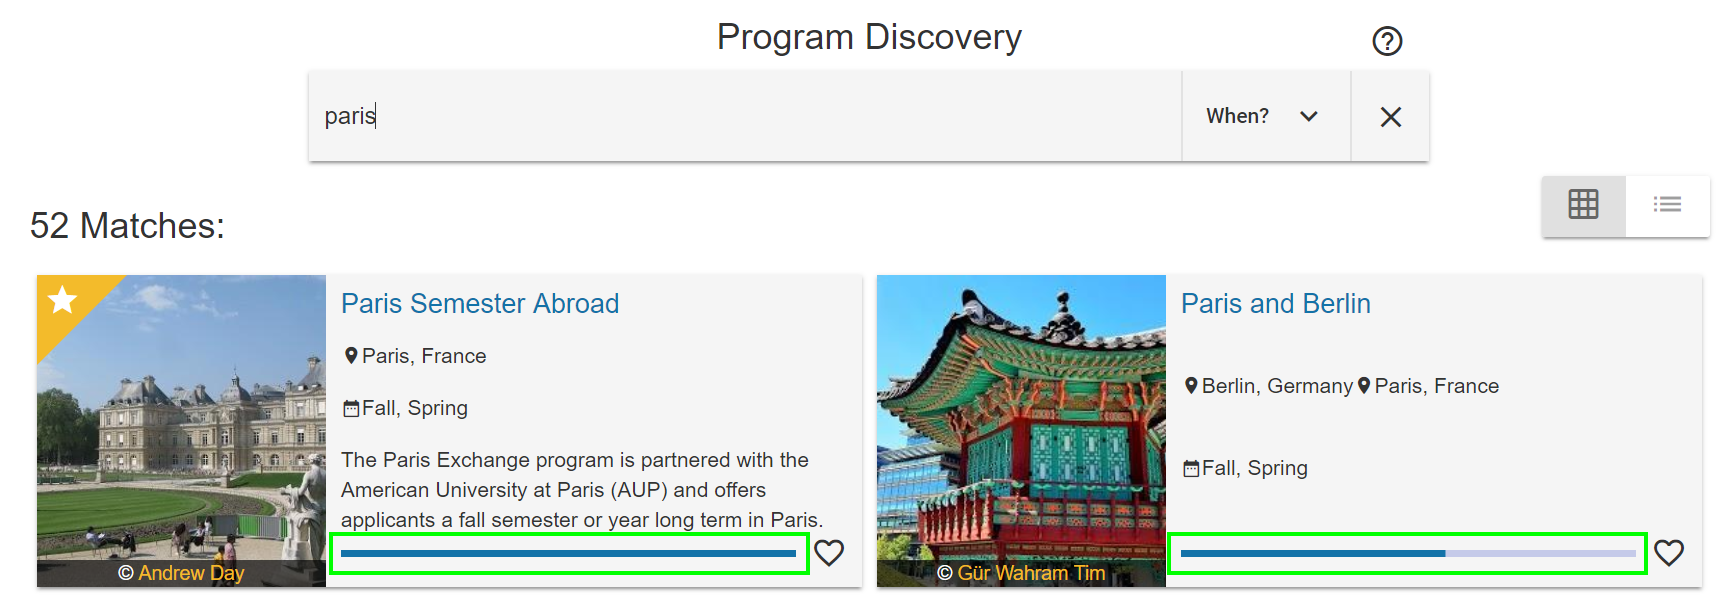 Program Discovery 6.png